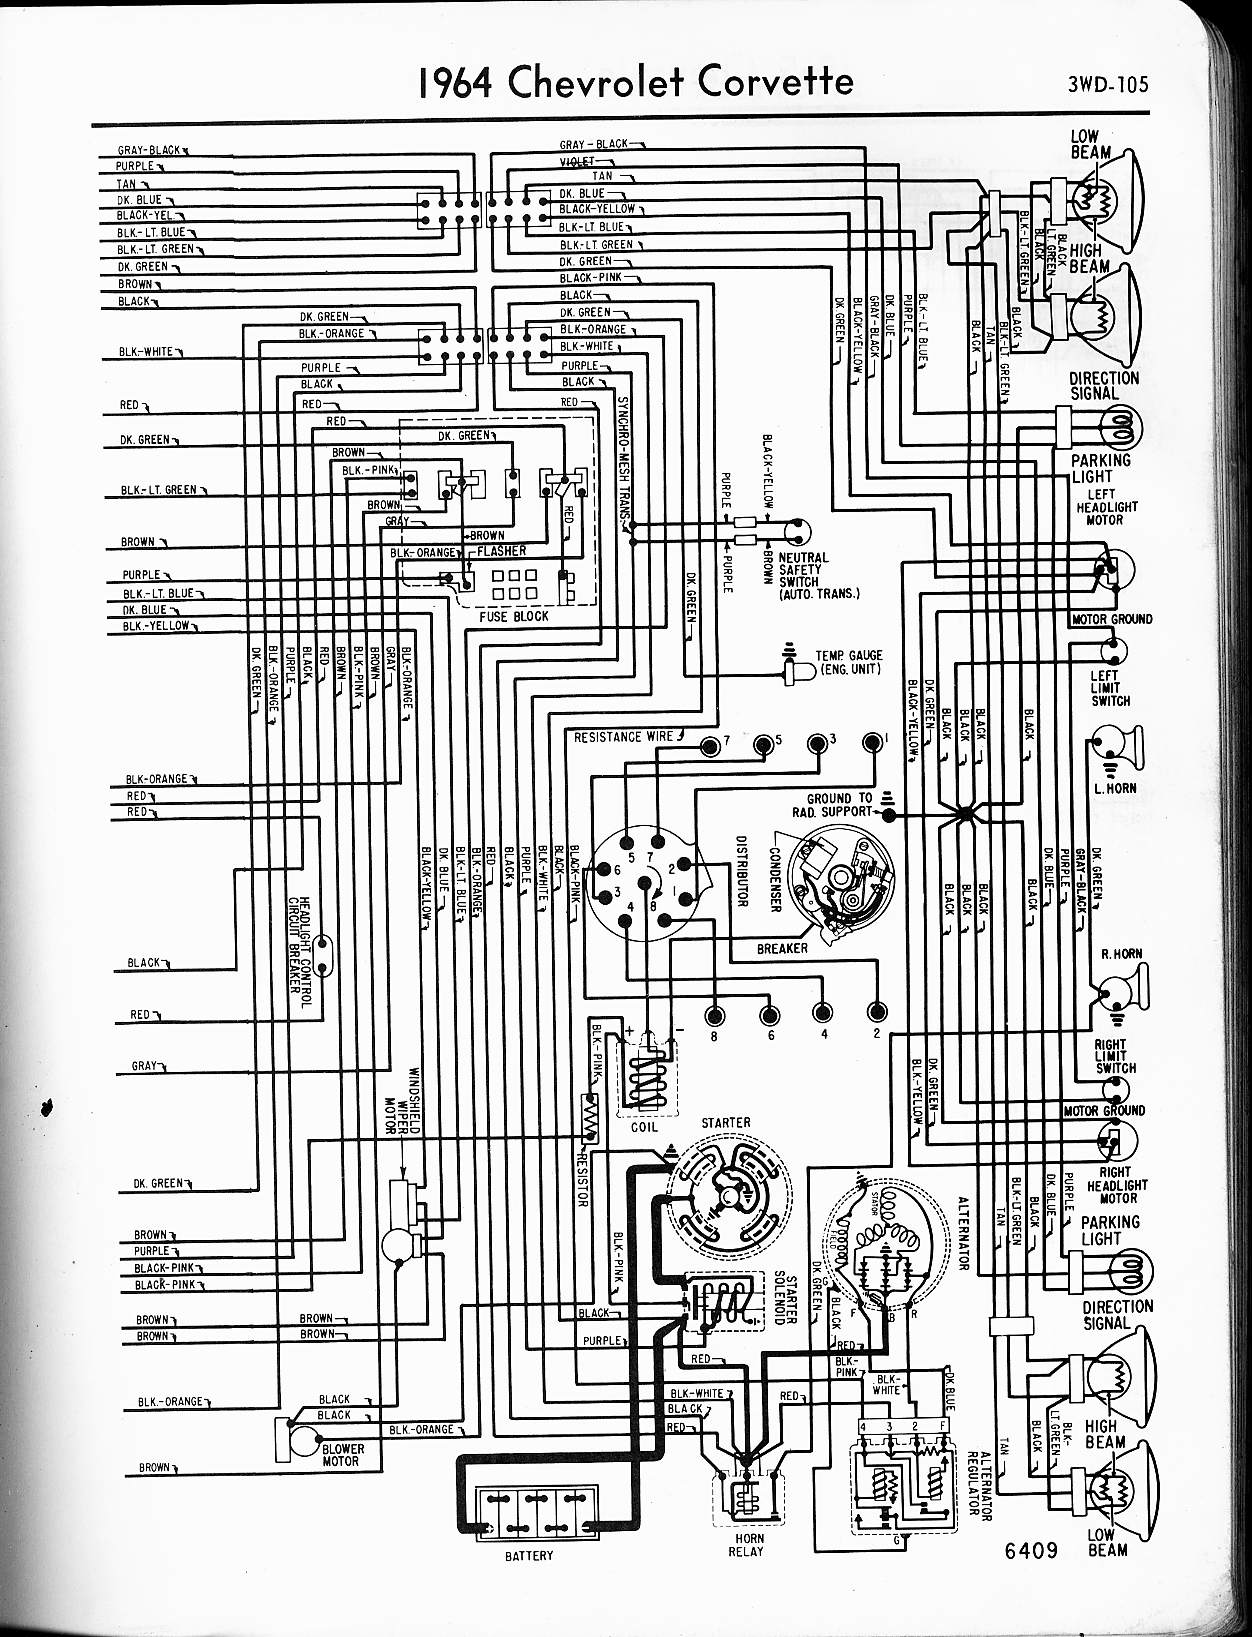 1972 Impala Wiring Diagram | Wiring Liry on 65 ford mustang wiring diagram, 65 vw bug wiring diagram, 1965 chevy truck wiring diagram, 06 impala starter wiring diagram, 65 ford ranchero wiring diagram, 65 buick skylark wiring diagram, 65 buick electra wiring diagram, 1965 chevy impala wiring diagram, 1961 impala wiring diagram, 65 pontiac gto wiring diagram, 65 lincoln continental wiring diagram, 65 ford thunderbird wiring diagram, 1964 chevy impala wiring diagram, 1962 chevy impala wiring diagram, 62 chevy impala wiring diagram, 65 ford galaxie wiring diagram, 63 chevy impala wiring diagram, 72 chevy impala wiring diagram, 66 chevy impala wiring diagram, 1965 chevy nova wiring diagram,